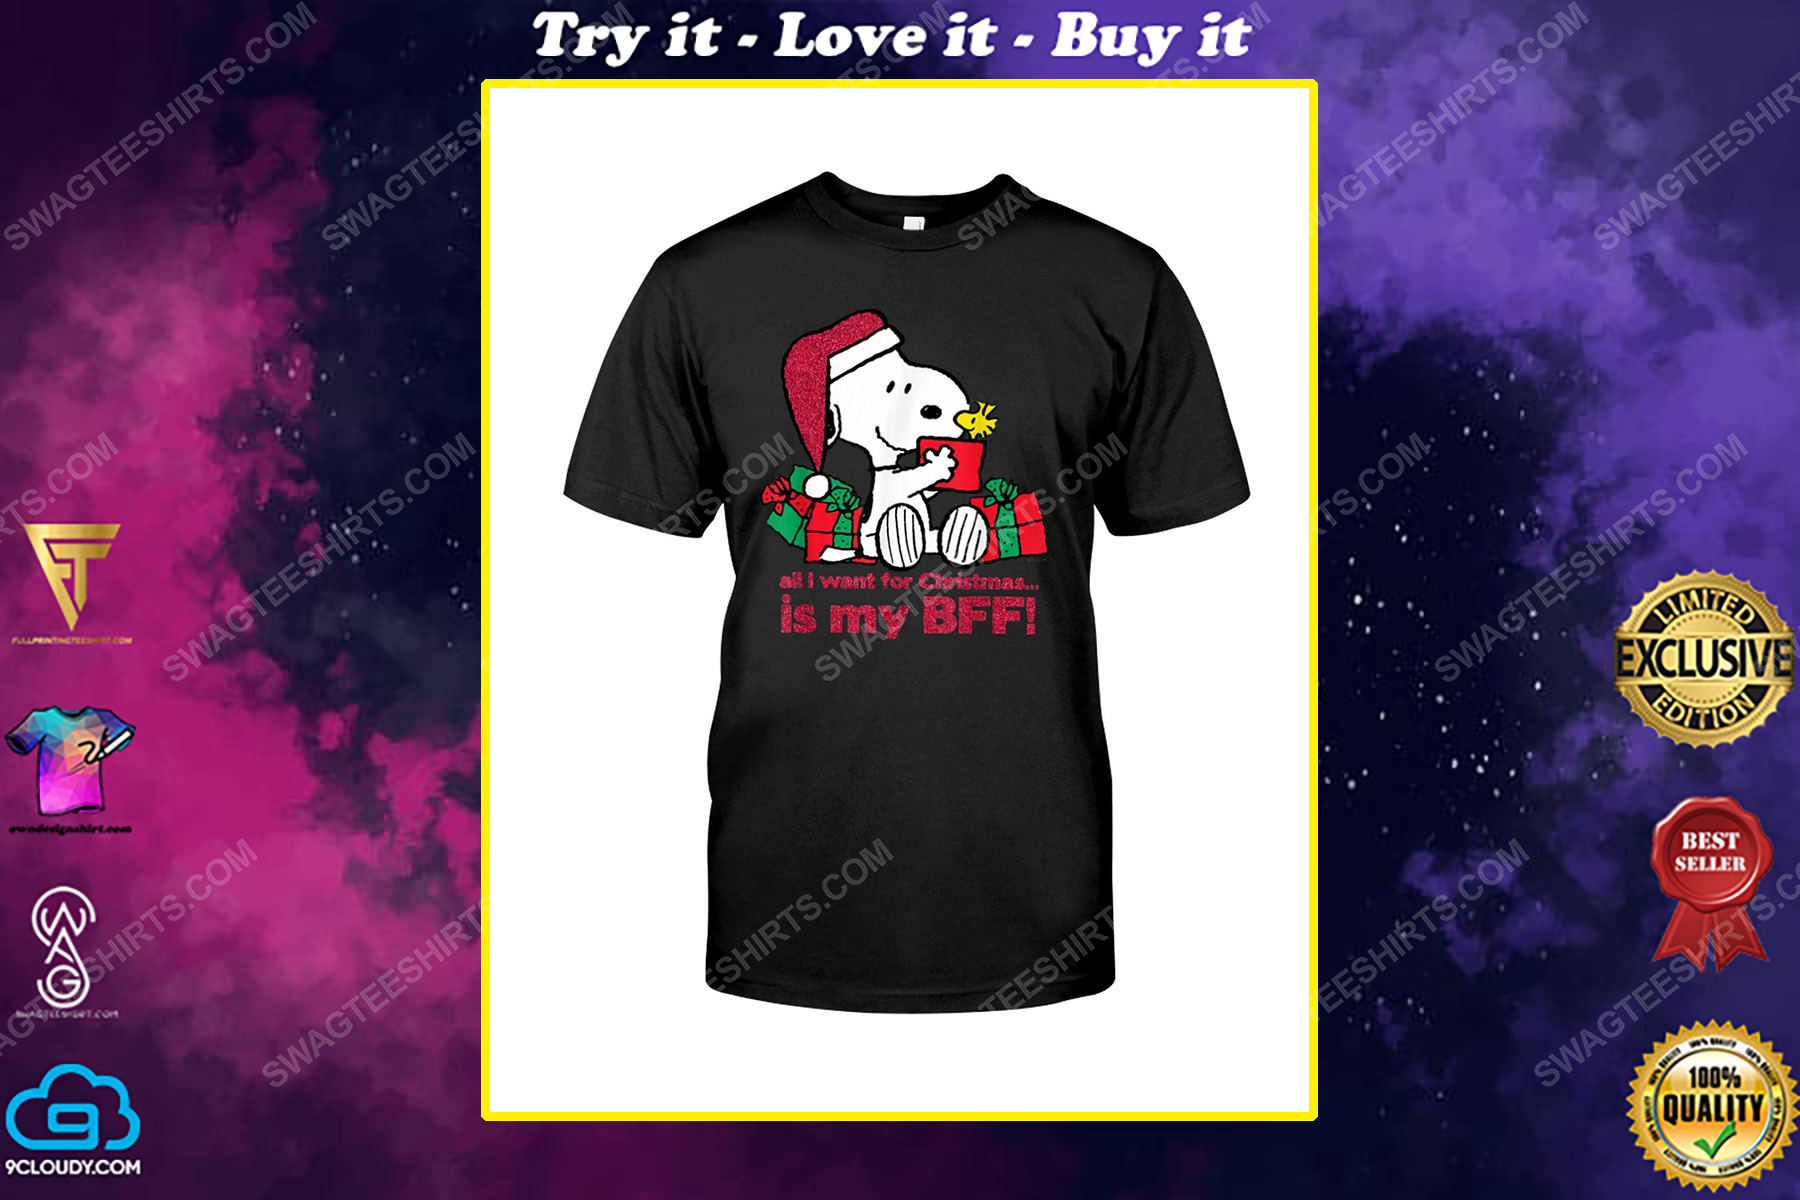 Snoopy all i want for christmas is my bff shirt